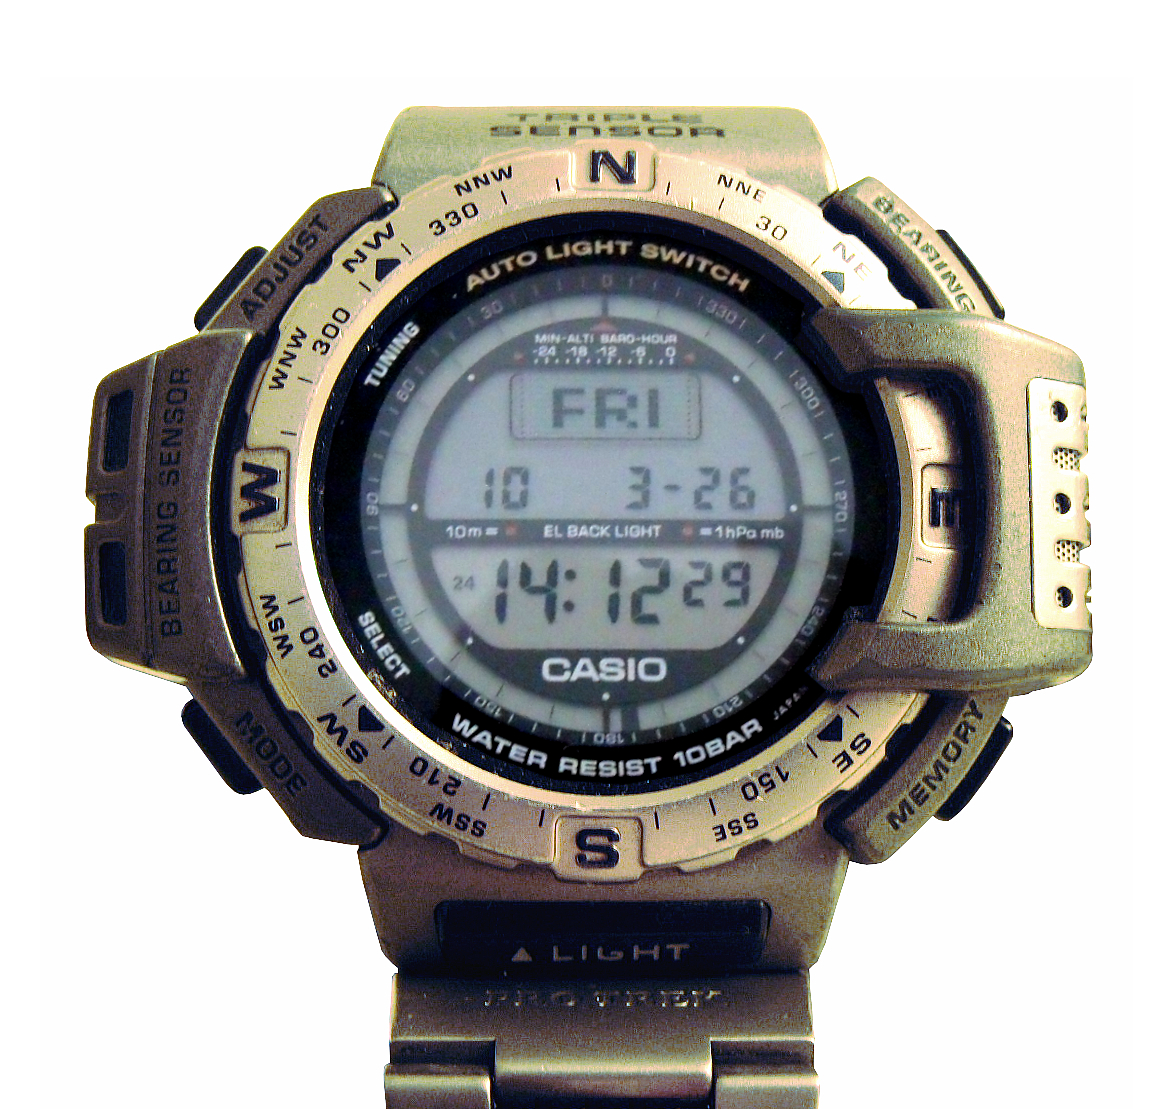 7d78d9a621b2 File Casio Triple Sensor Pro Trek.jpg - Wikimedia Commons